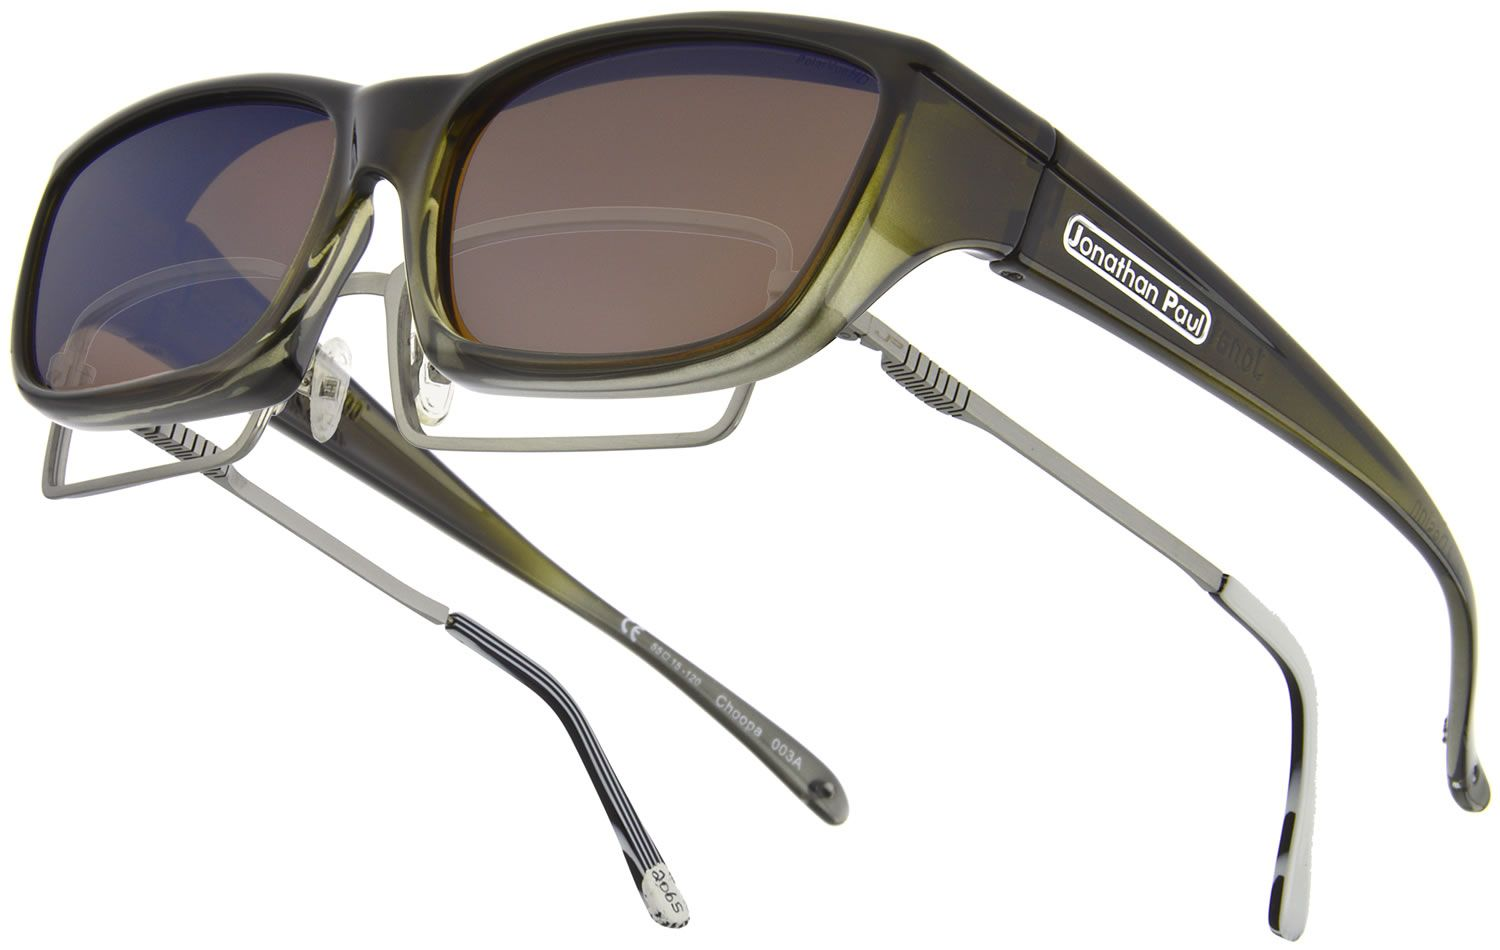 Choopa Olive Charcoal Fitovers by Jonathan Paul - high quality TR90 hand-painted frames and durable polycarbonate lenses.